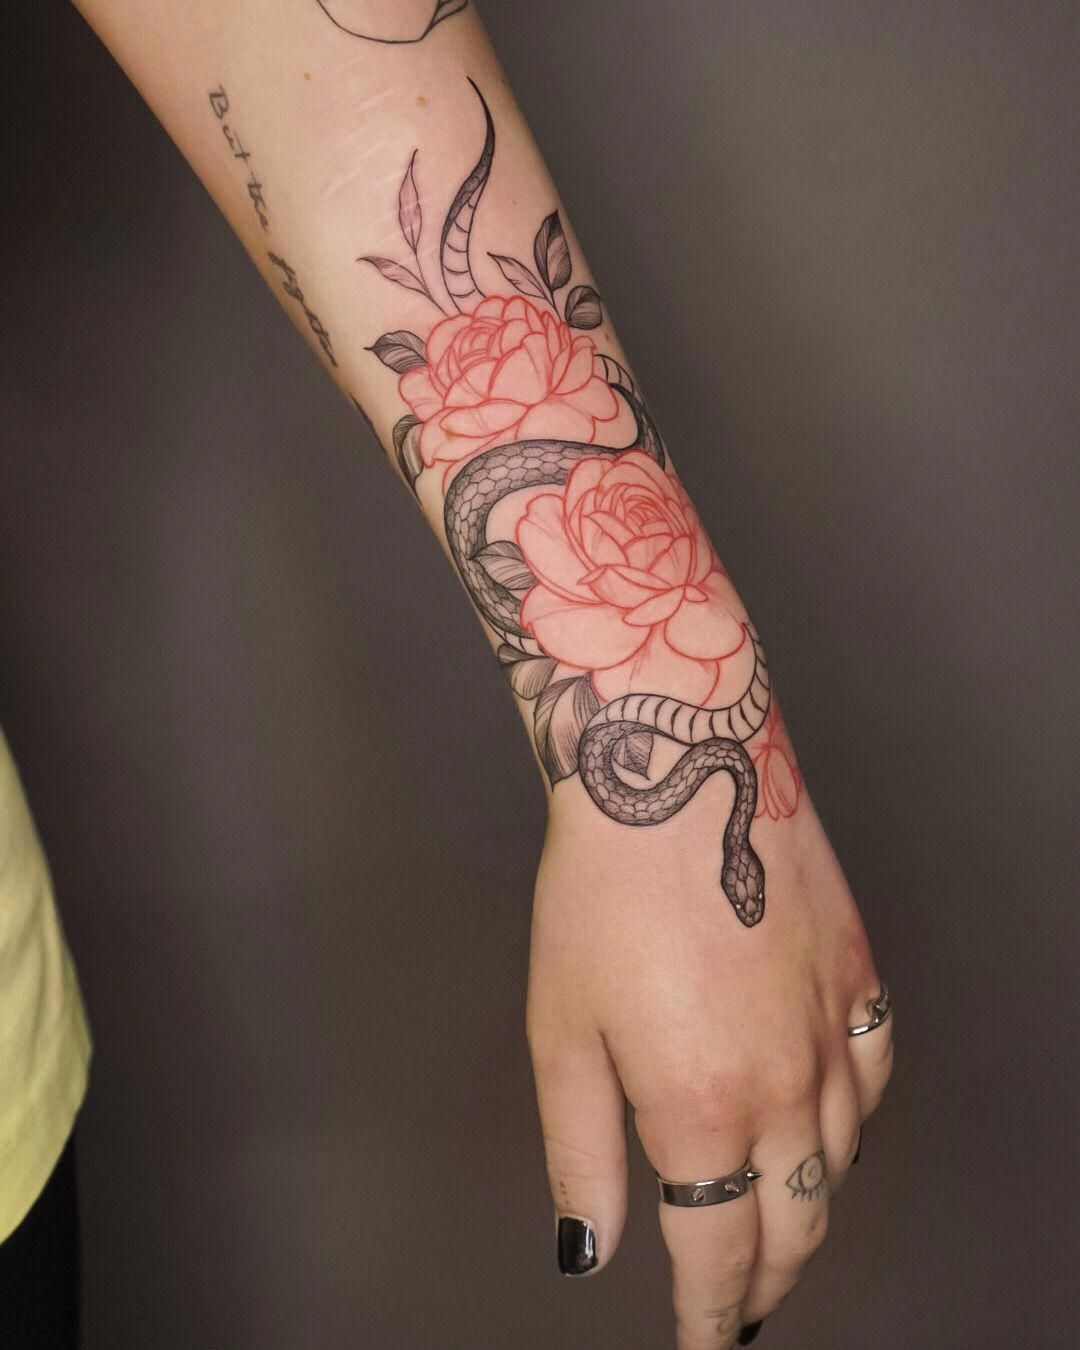 Inspiring tips that we take great delight in! FlagTattoo